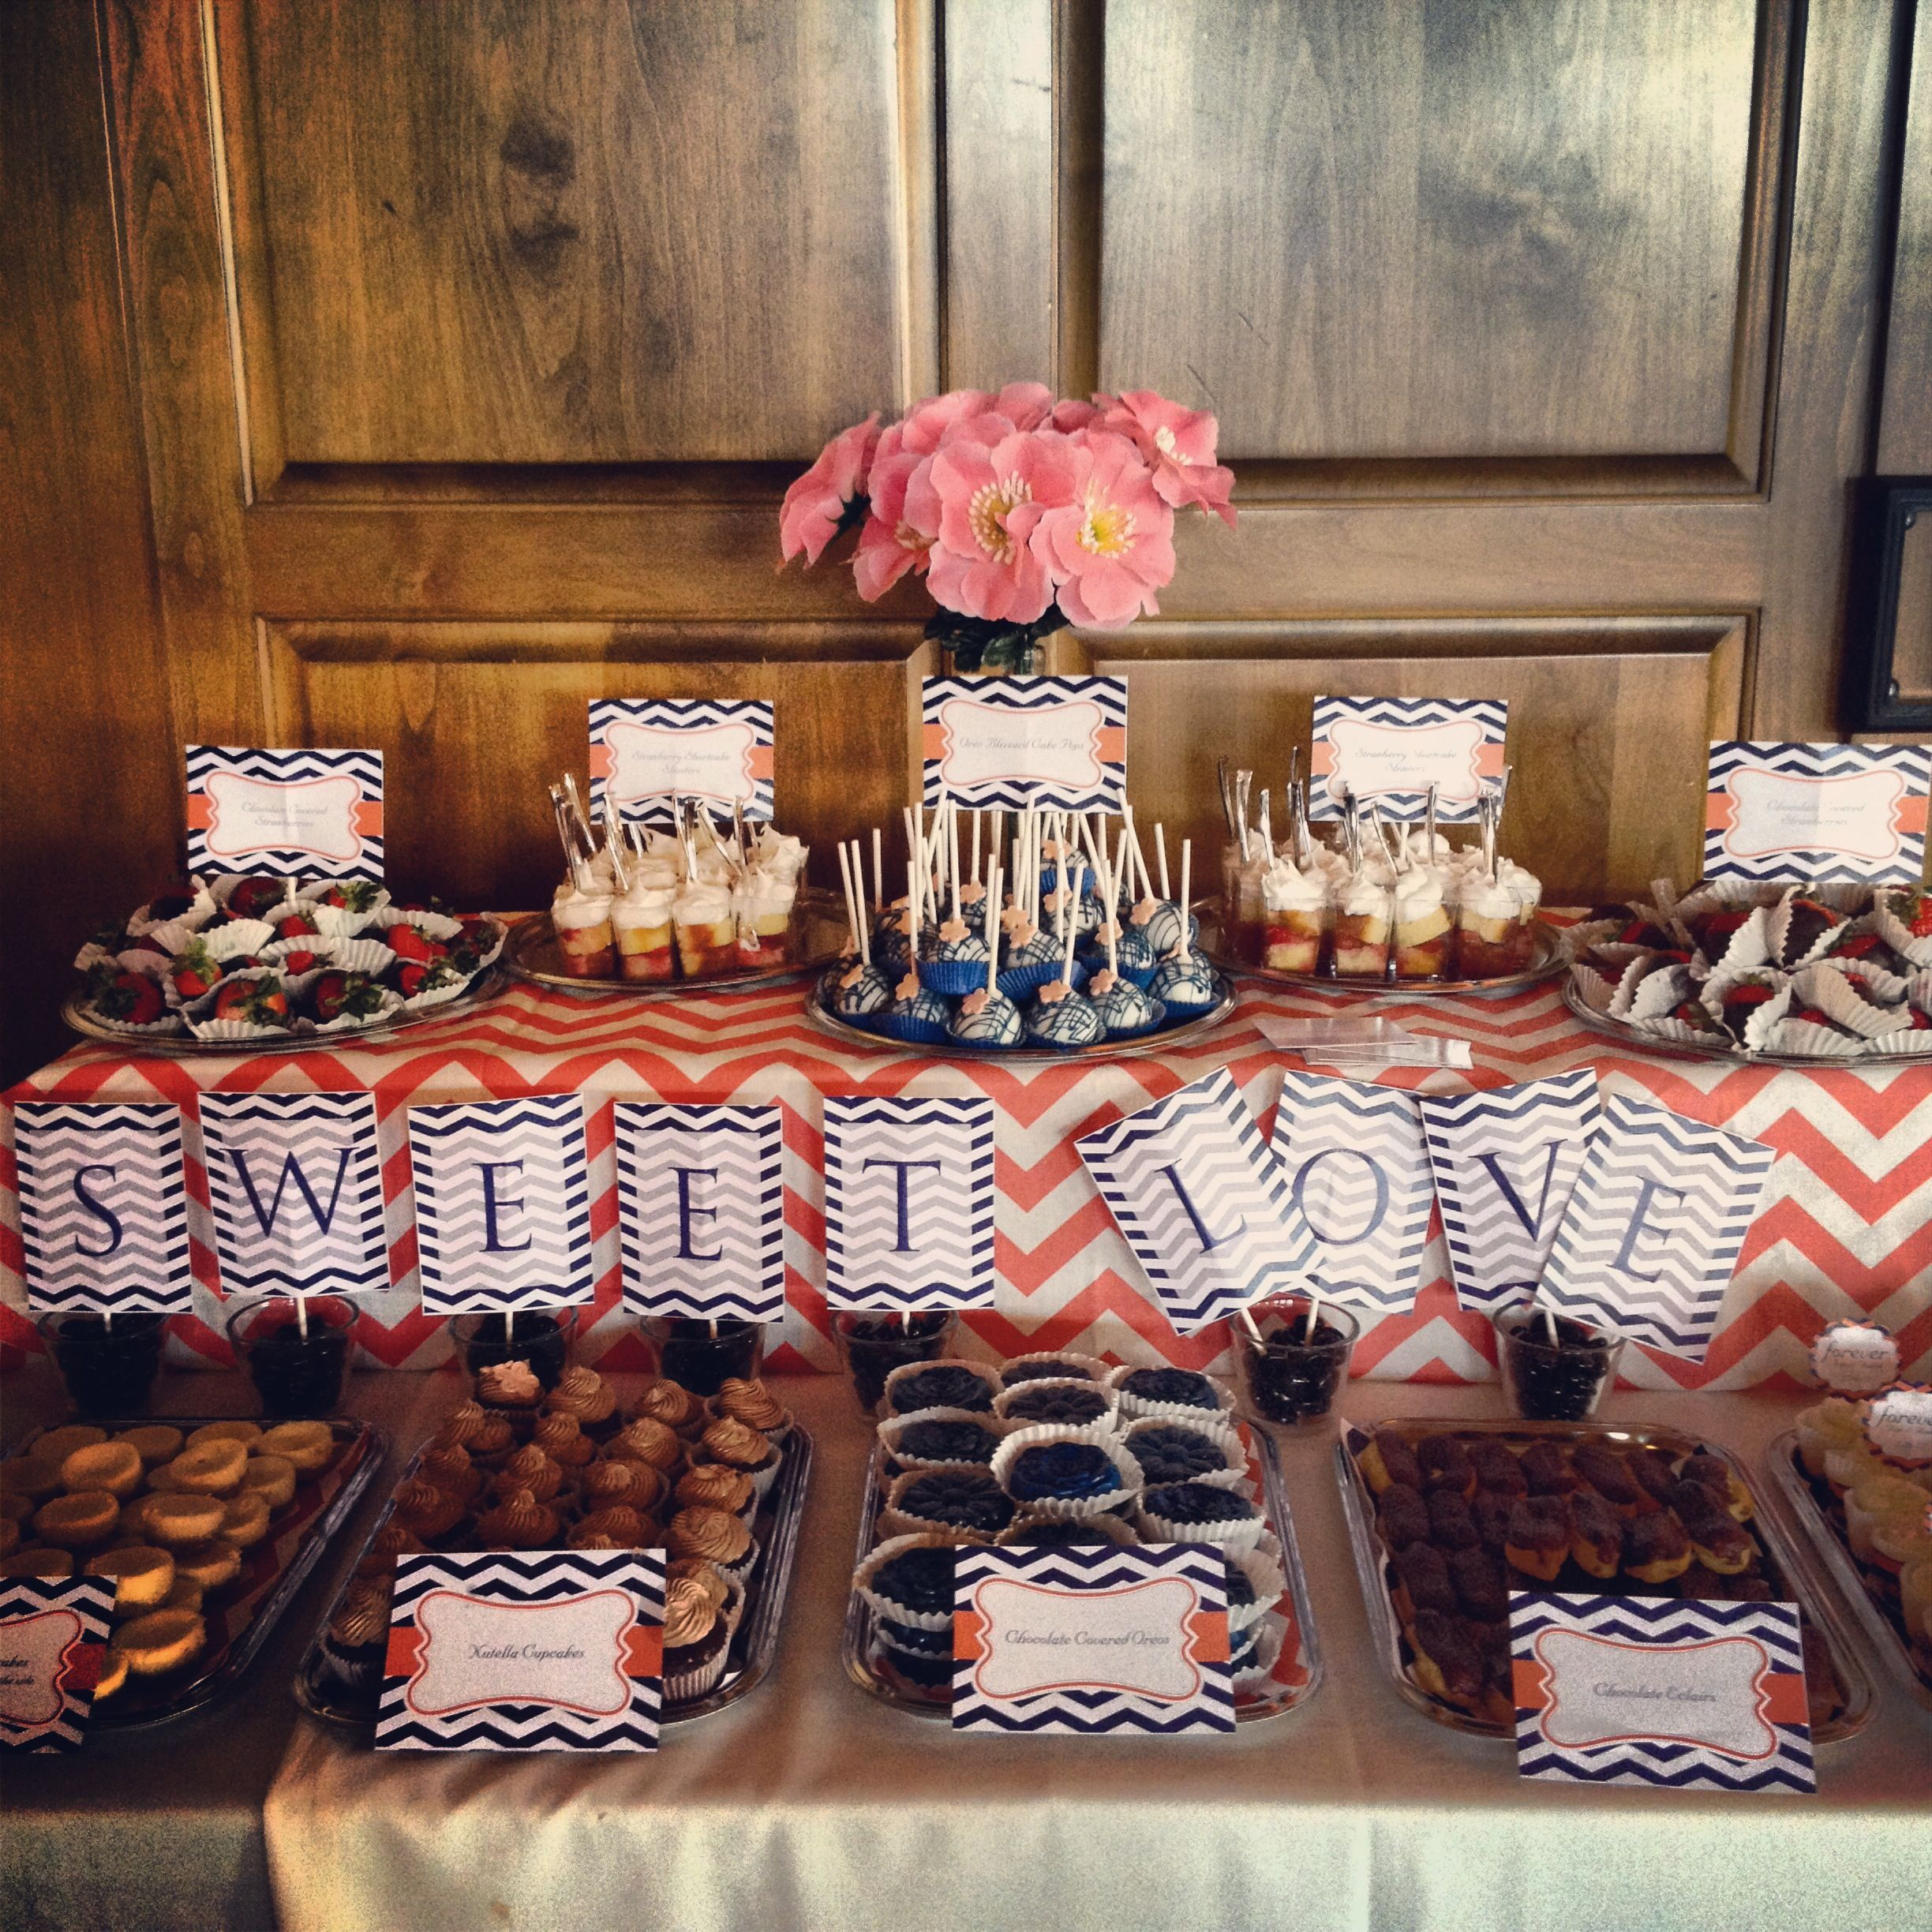 navy blue and coral dessert table itsasweetthingdesserts com cute sign but in a less nauseating pattern